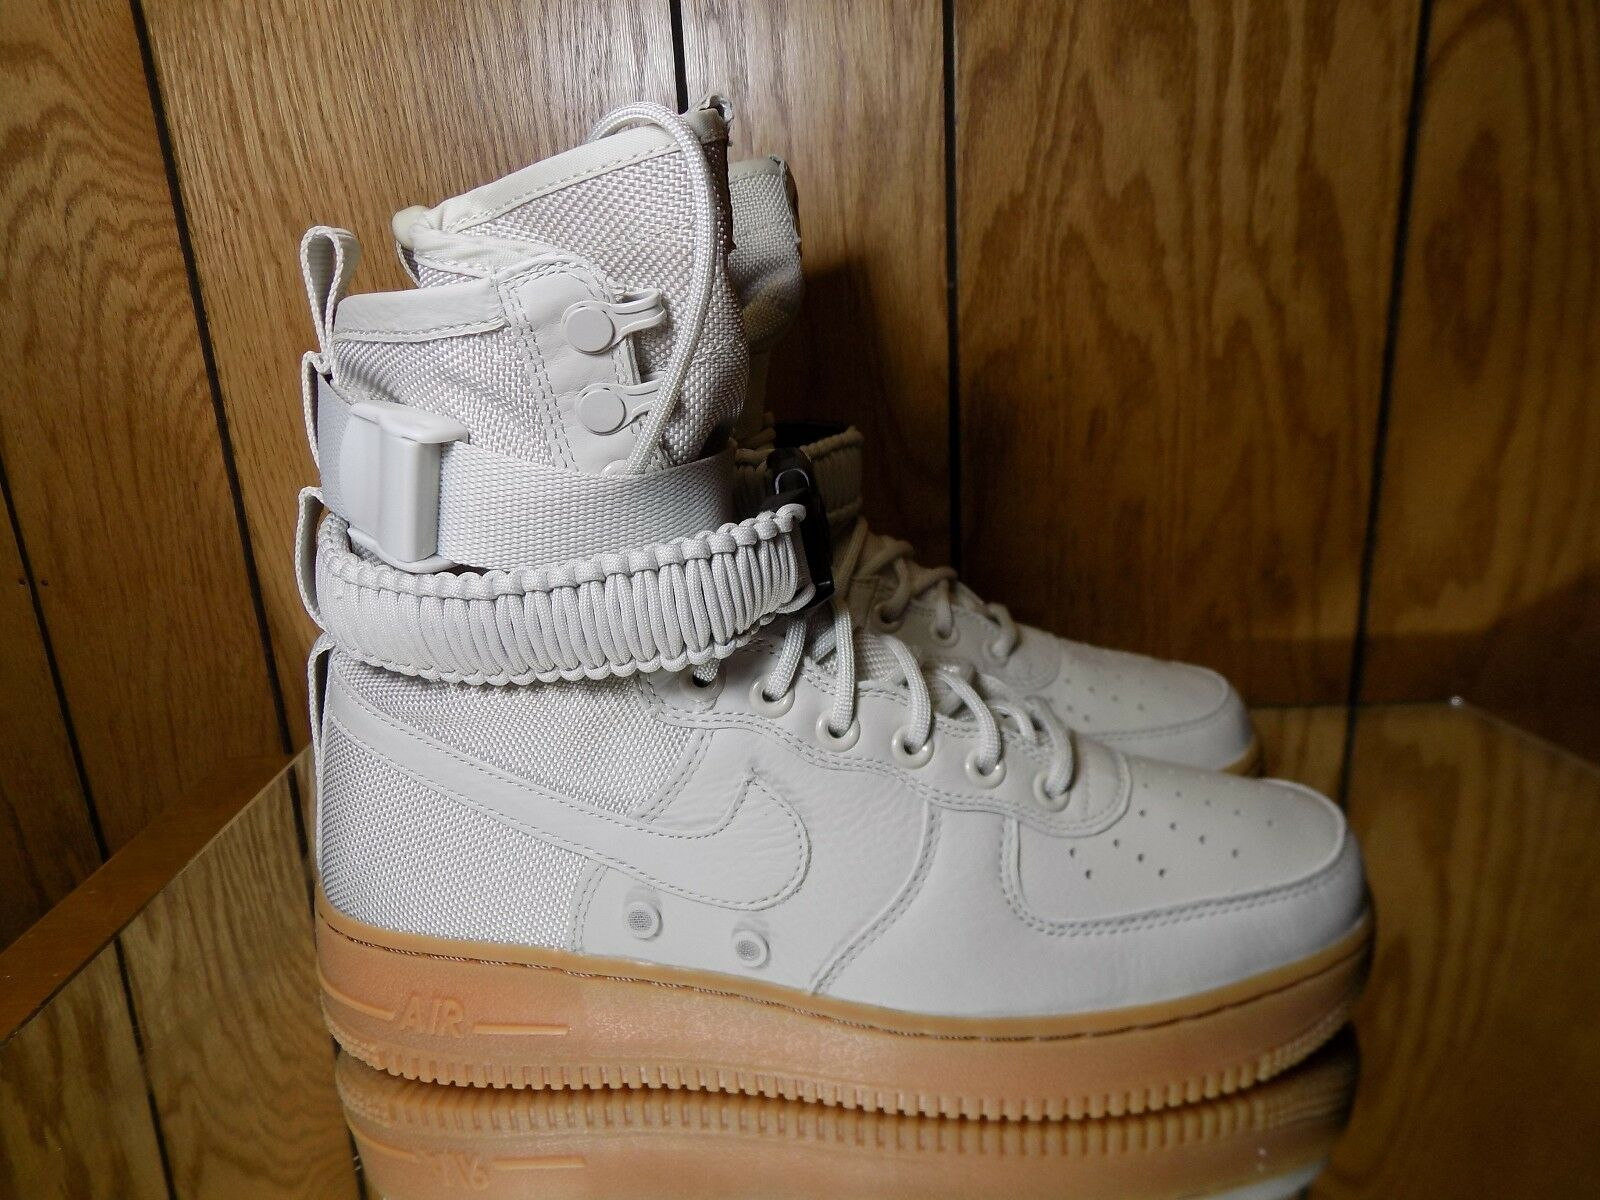 857872-004 Nike Women SF Air Force 1 Gry Lght Bone Gum s. 7